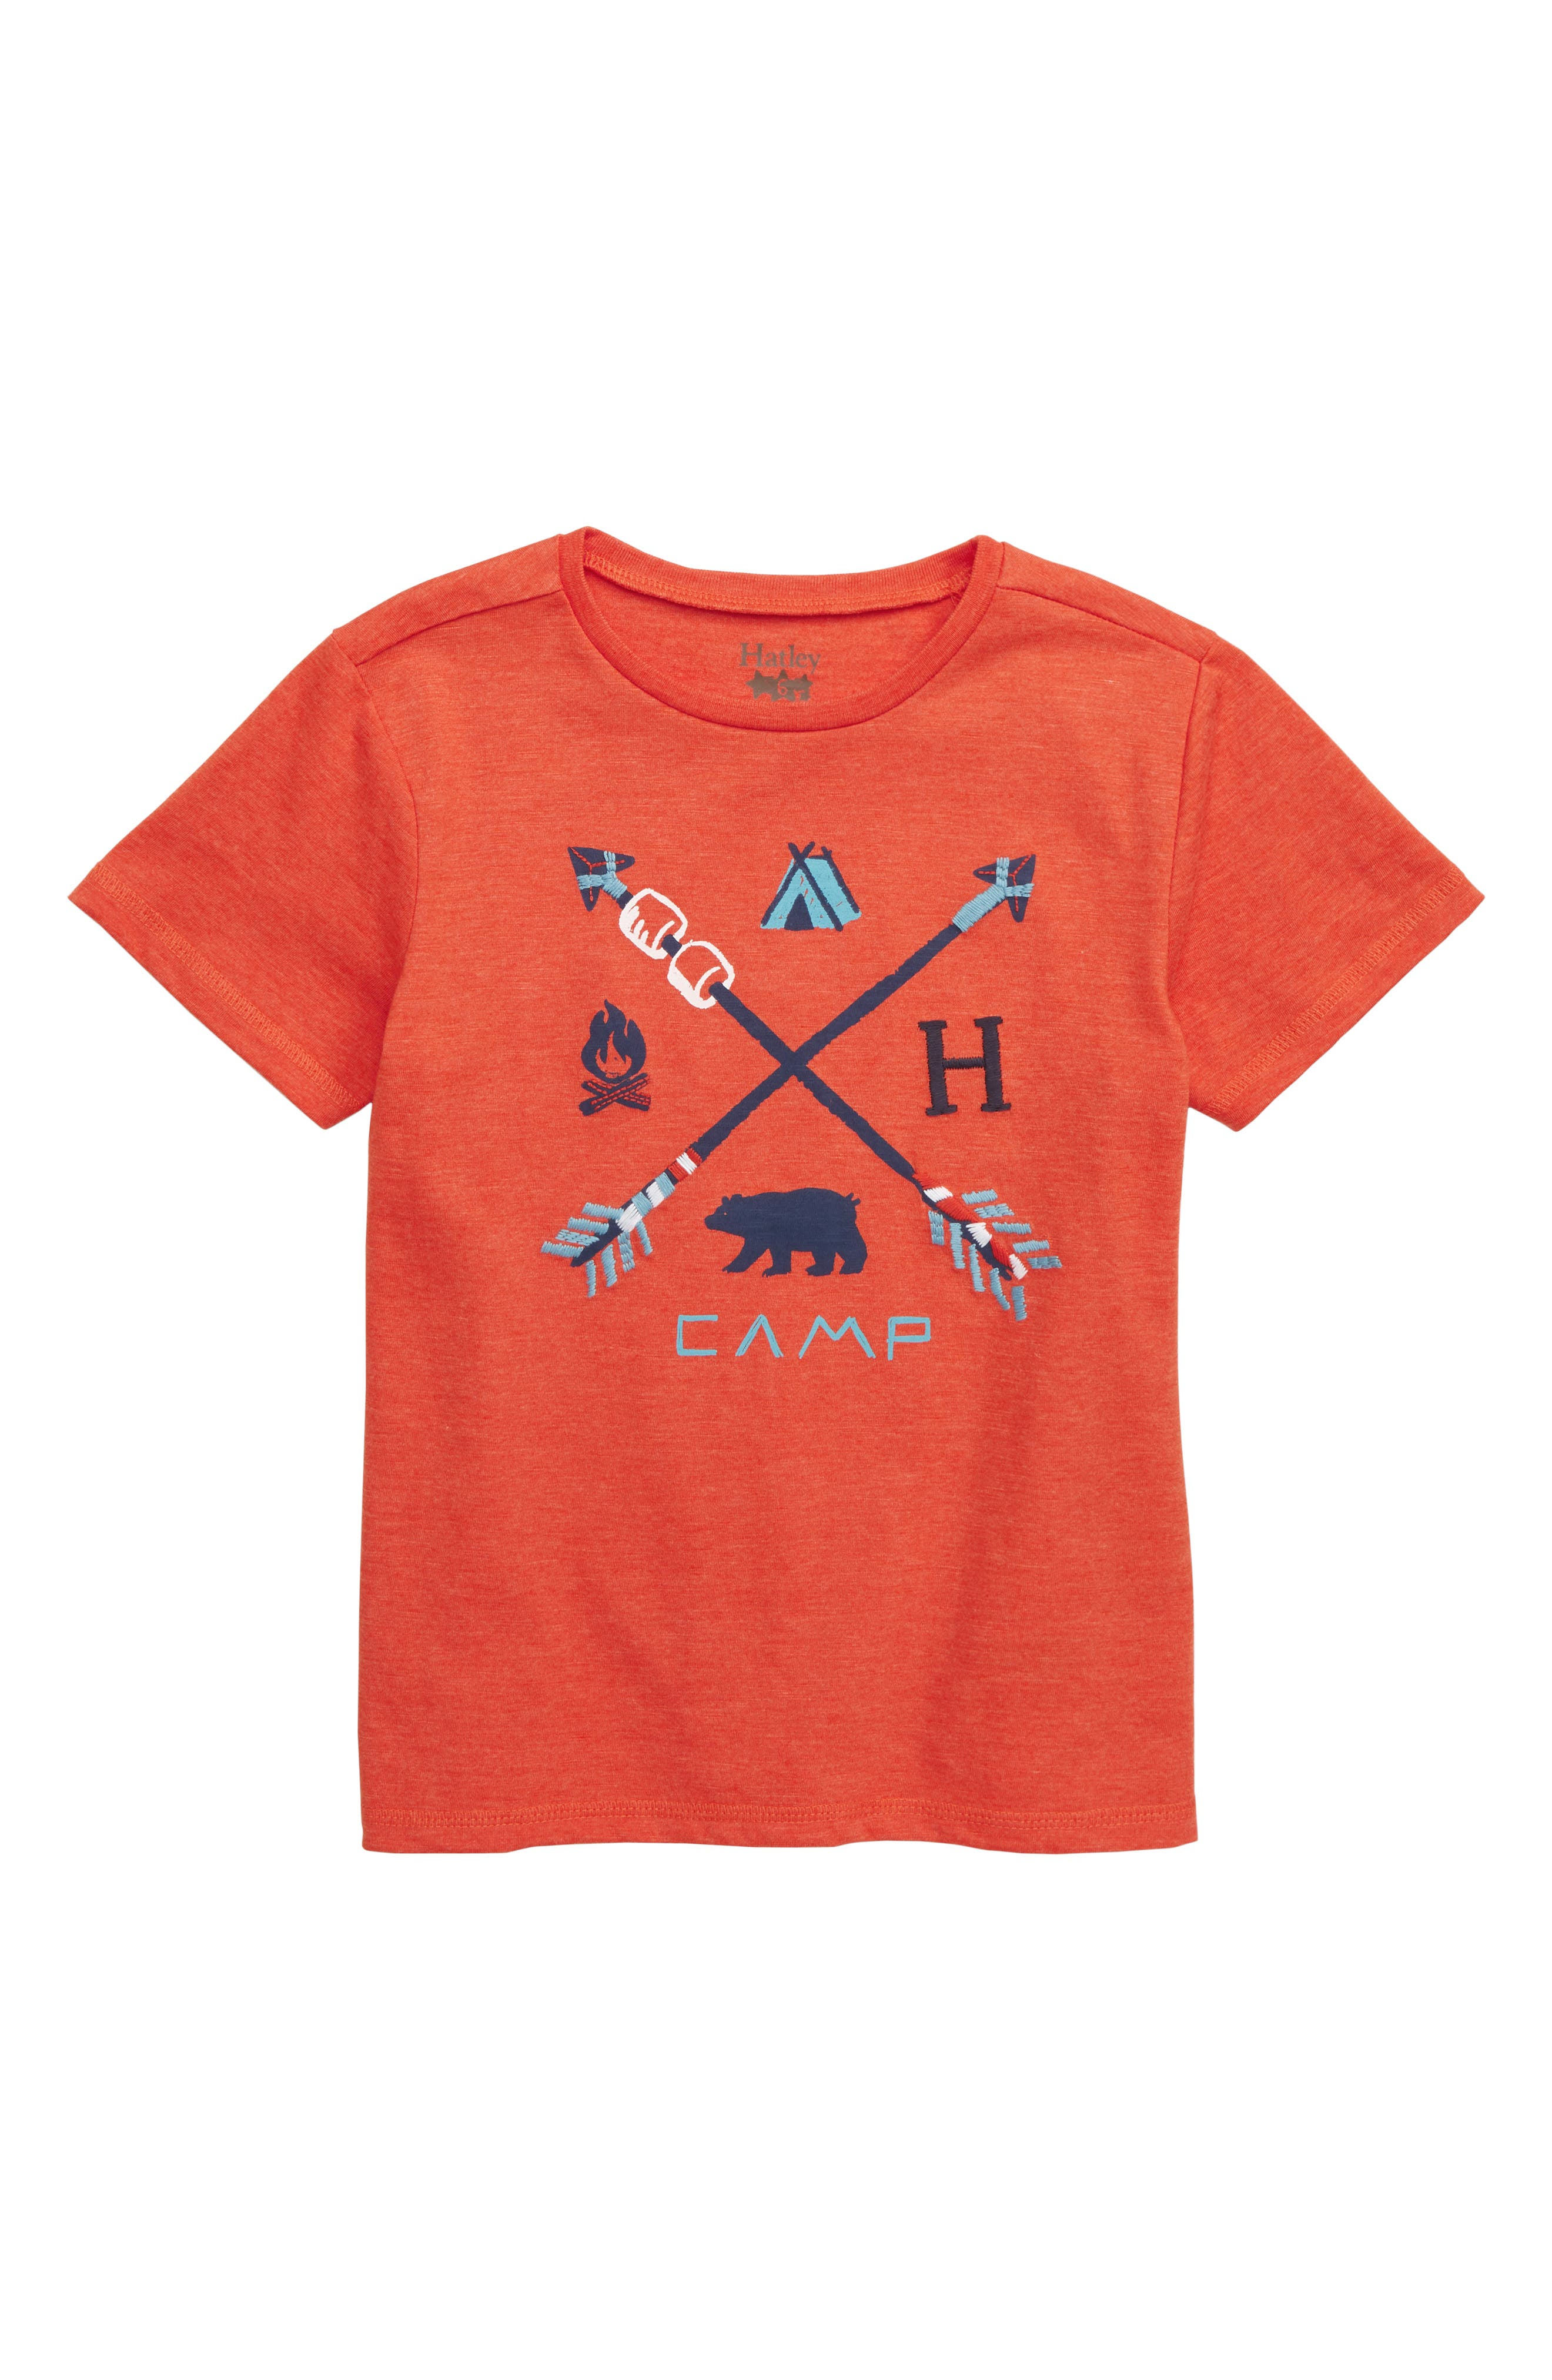 HATLEY Retro Camp Graphic T-Shirt, Main, color, ORANGE